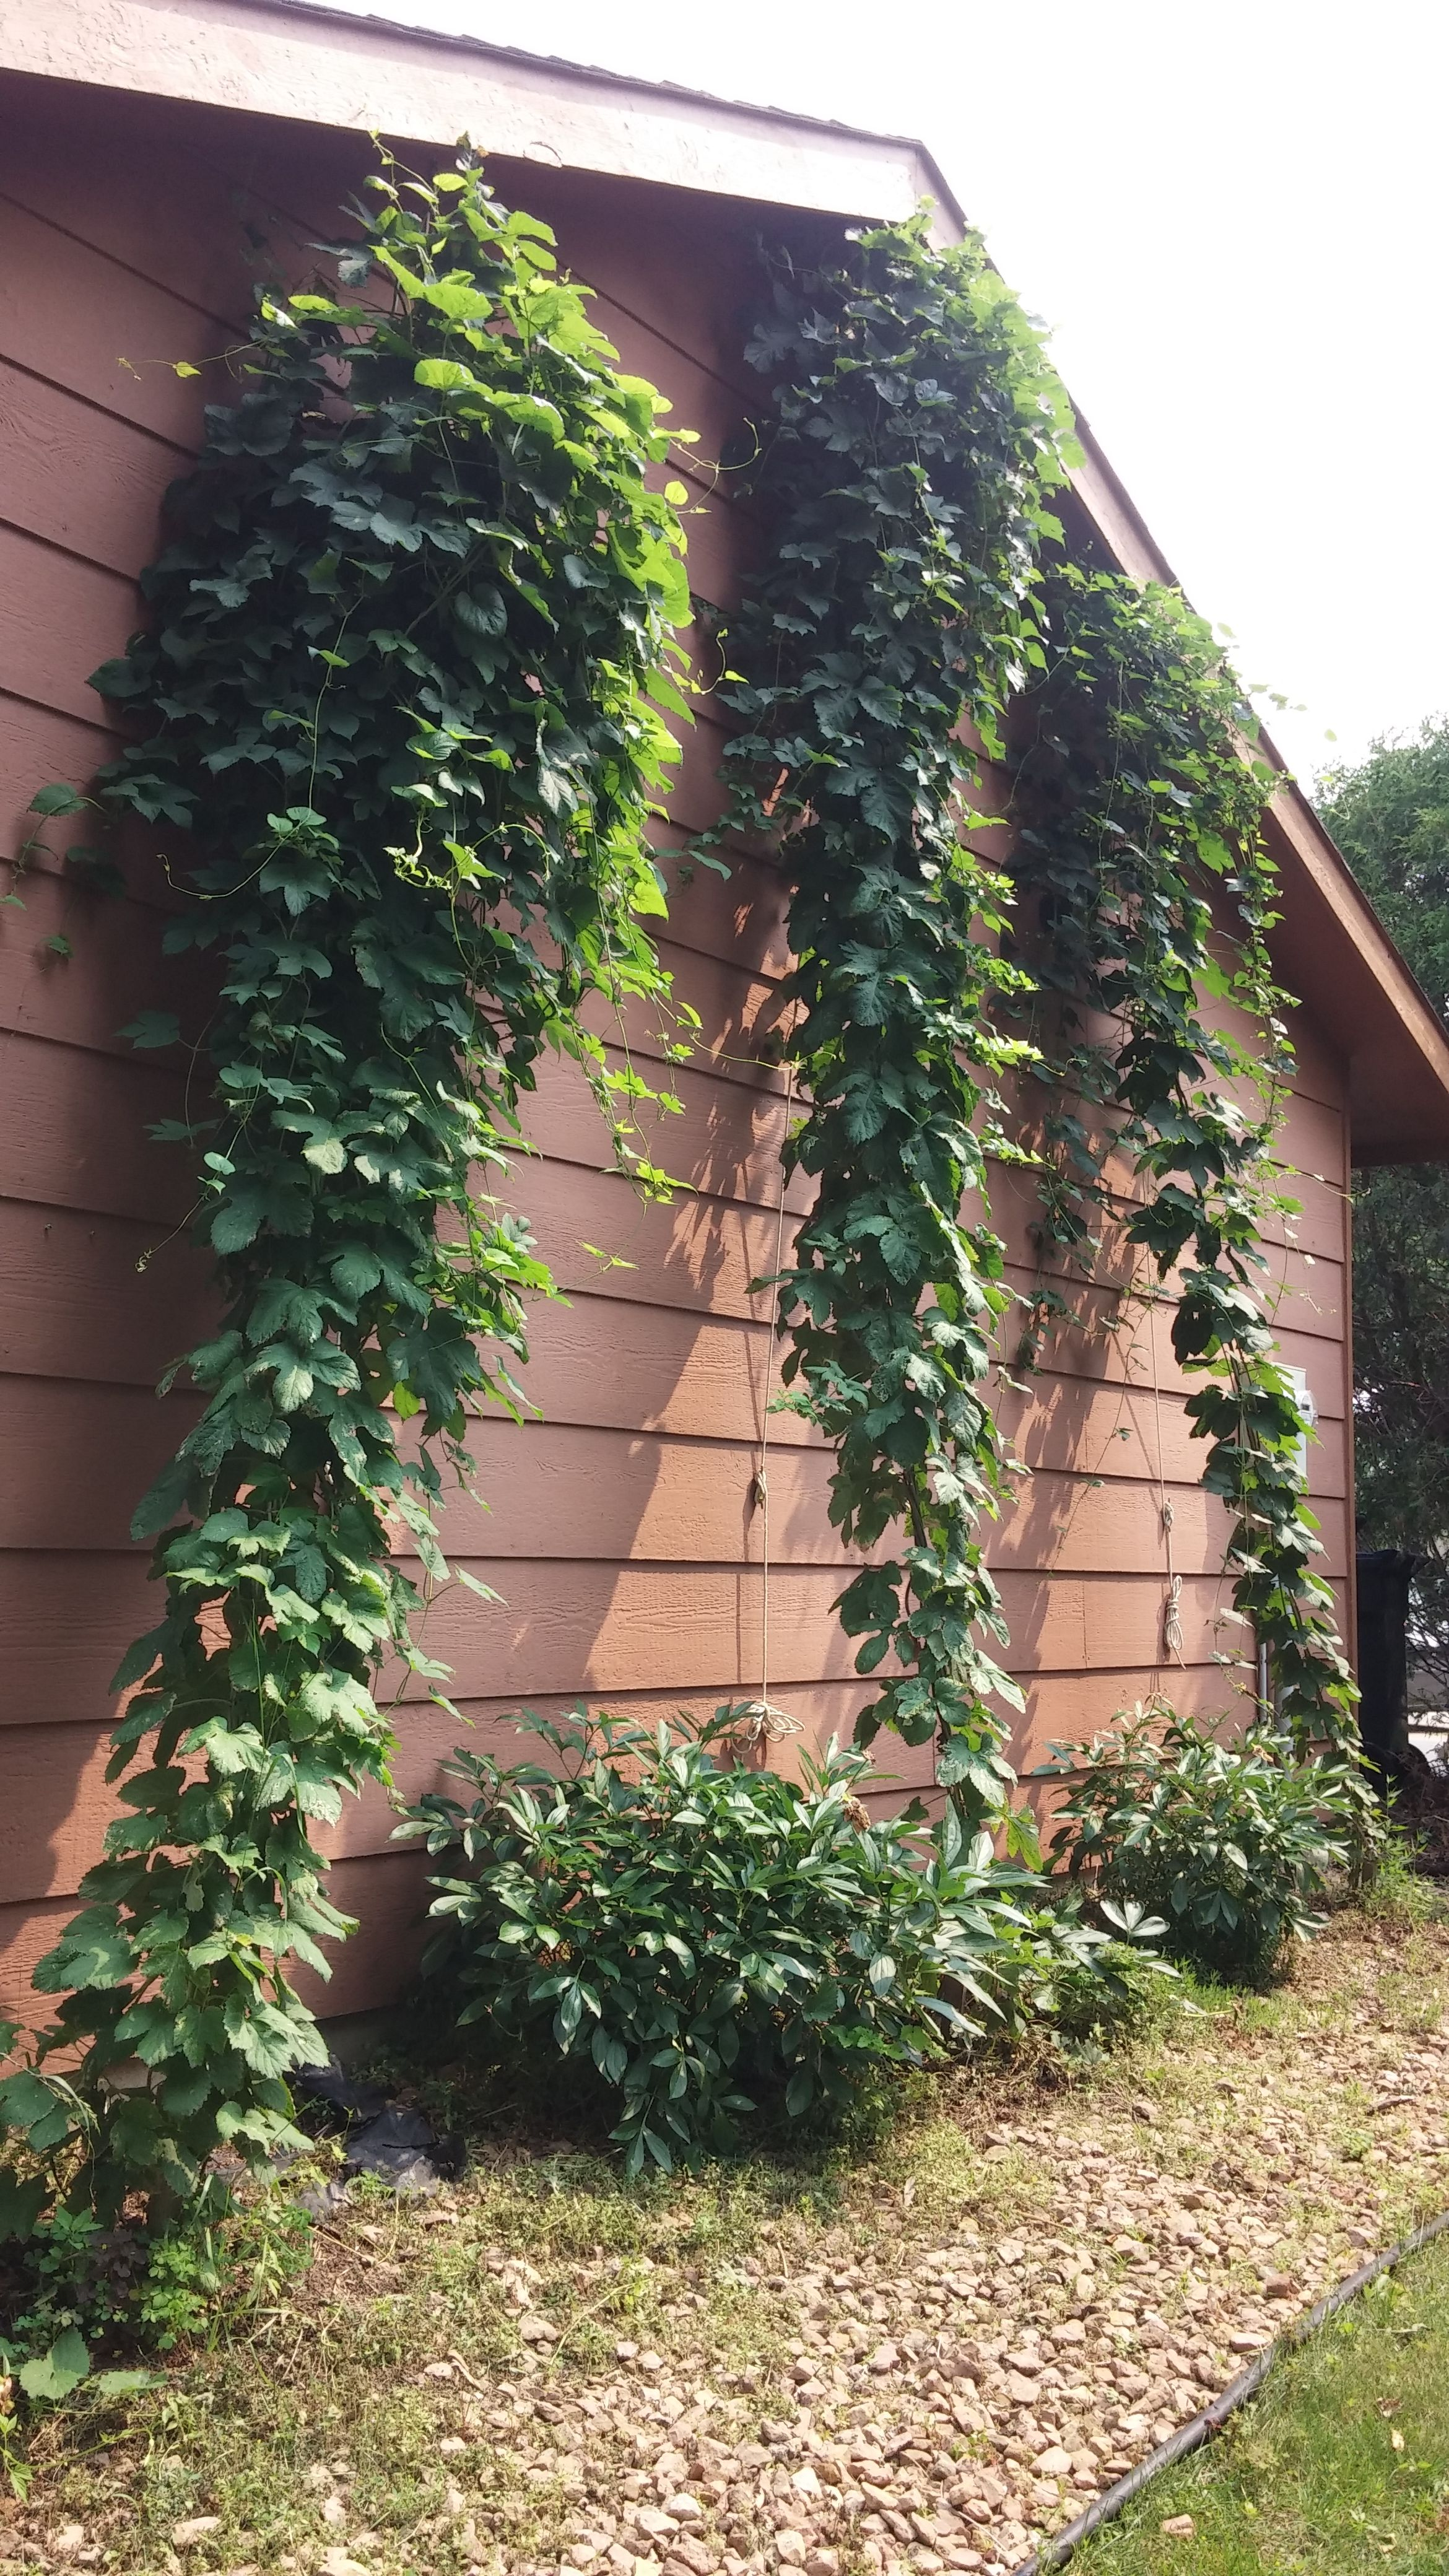 Hops For Decoration July 4th Hop Bines With Hop Burrs Growing Hops Pinterest